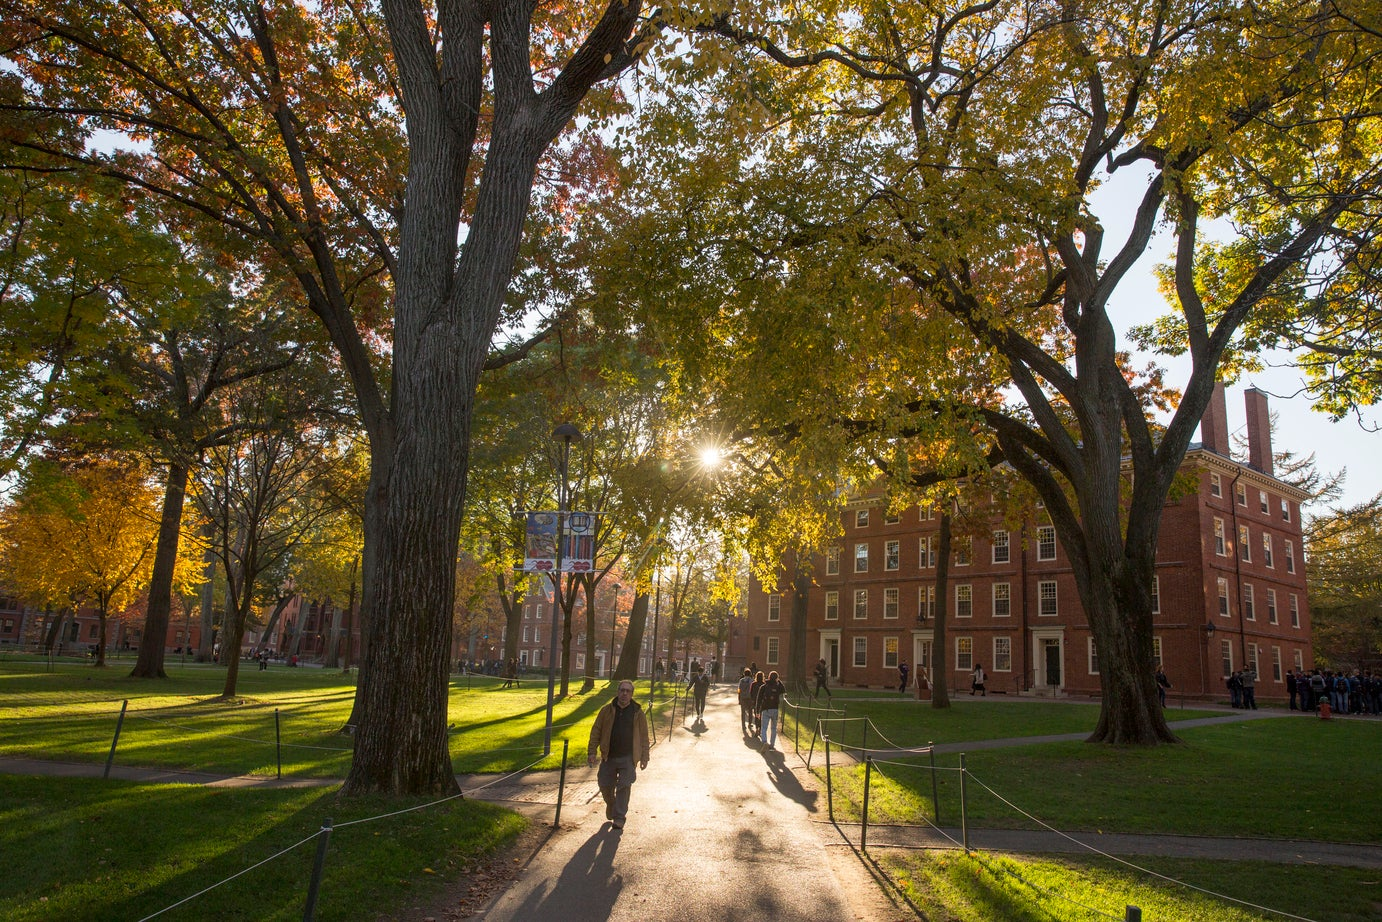 Campus with sun streaming through trees and person walking.